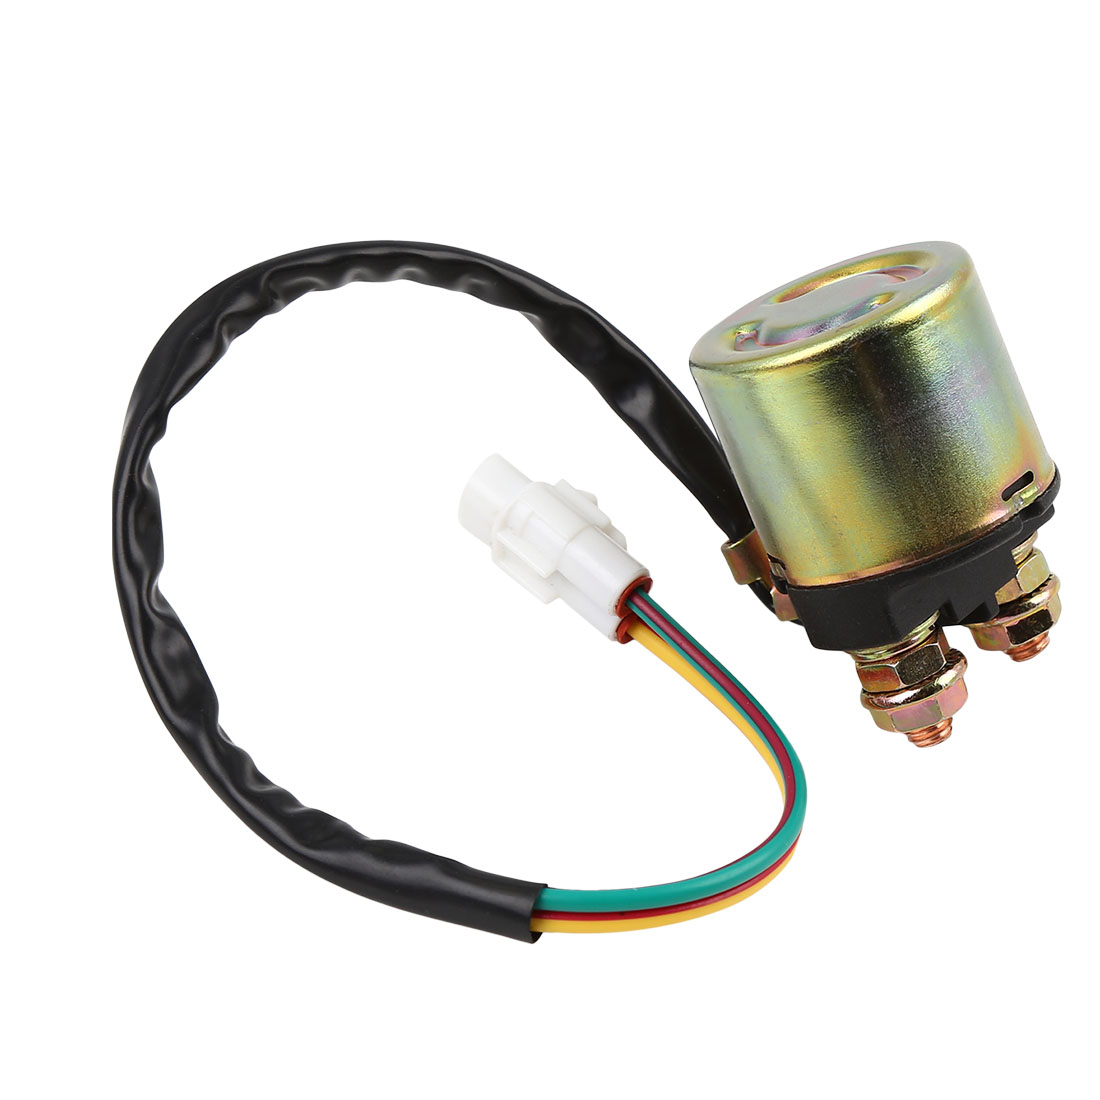 Starter Solenoid Relay for Honda ATV TRX350 Rancher FourTrax 35850-HM7-000